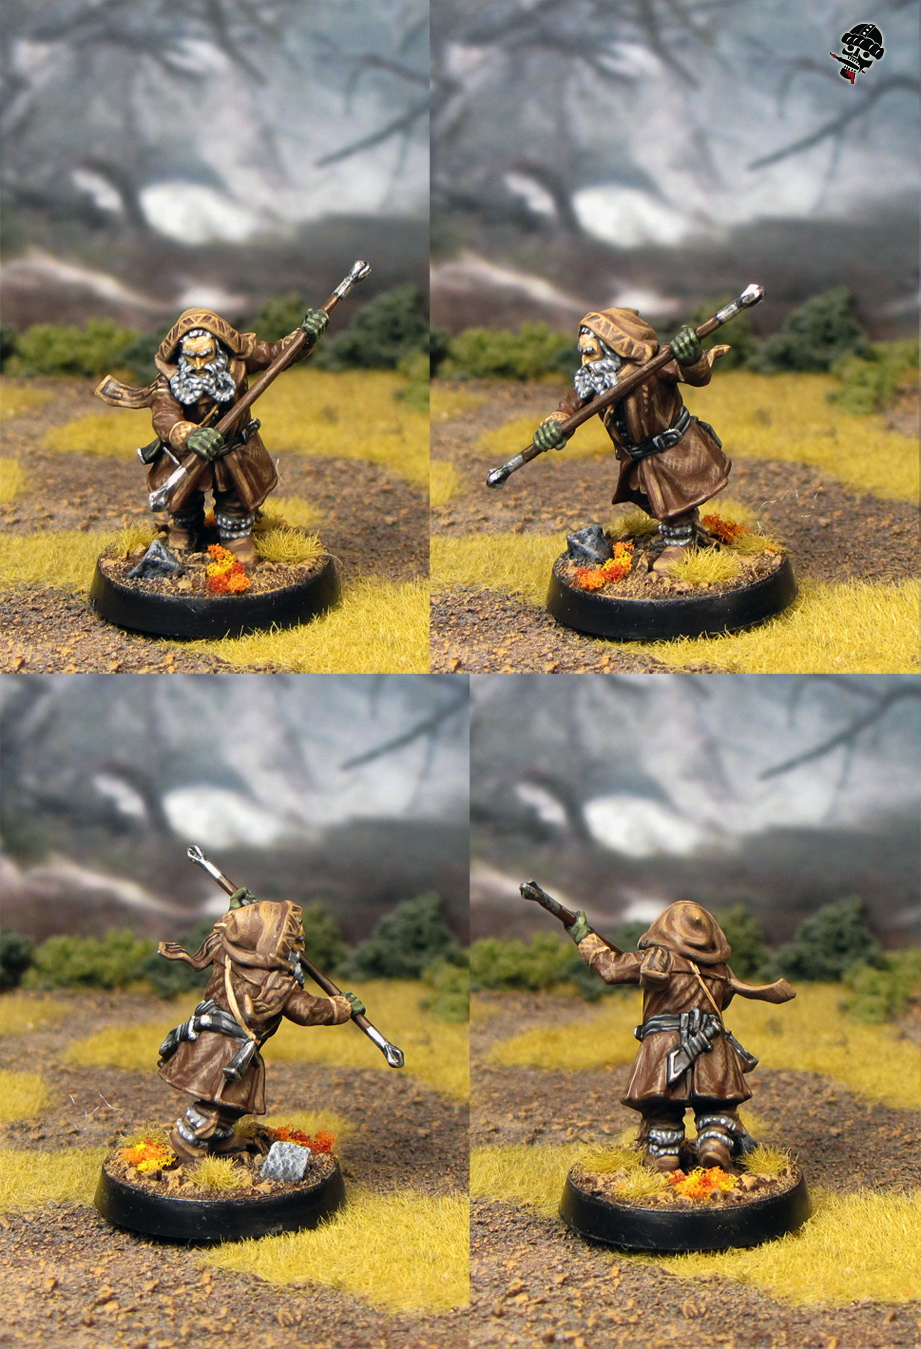 Oin from the Escape from Goblin town box set from Games Workshop painted by Neldoreth - An Hour of Wolves & Shattered Shields